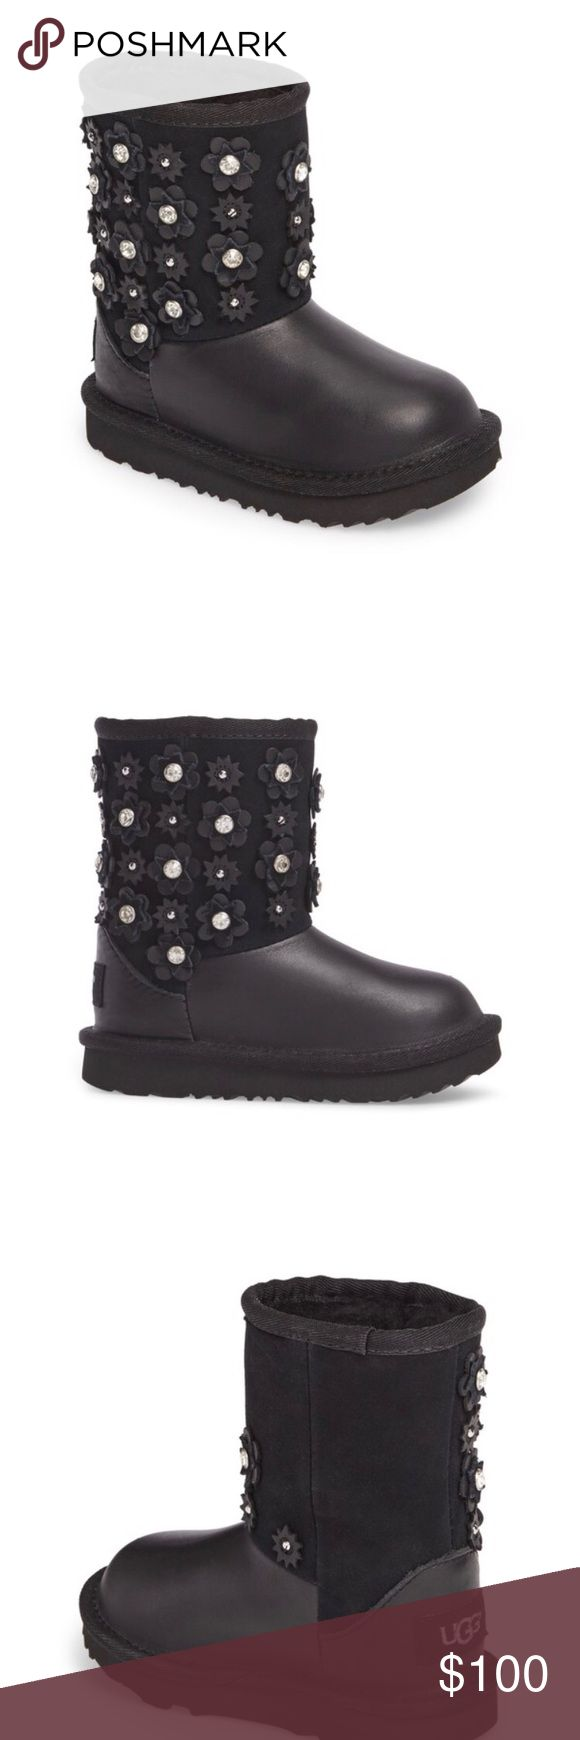 UGG K Classic Short II Petal Size 5M Big Kid K Classic Short II Petal 1019818k Black Size 5 M Big Kid. I wear between 5.5-6 women and these cute booties fits me, super comfortable. Retail for $139.95. Great for your girls too with this cute flower/ petal designs. MAke me an offer. Comes with box. Authentic. Got it at Nordstrom UGG Shoes Rain & Snow Boots